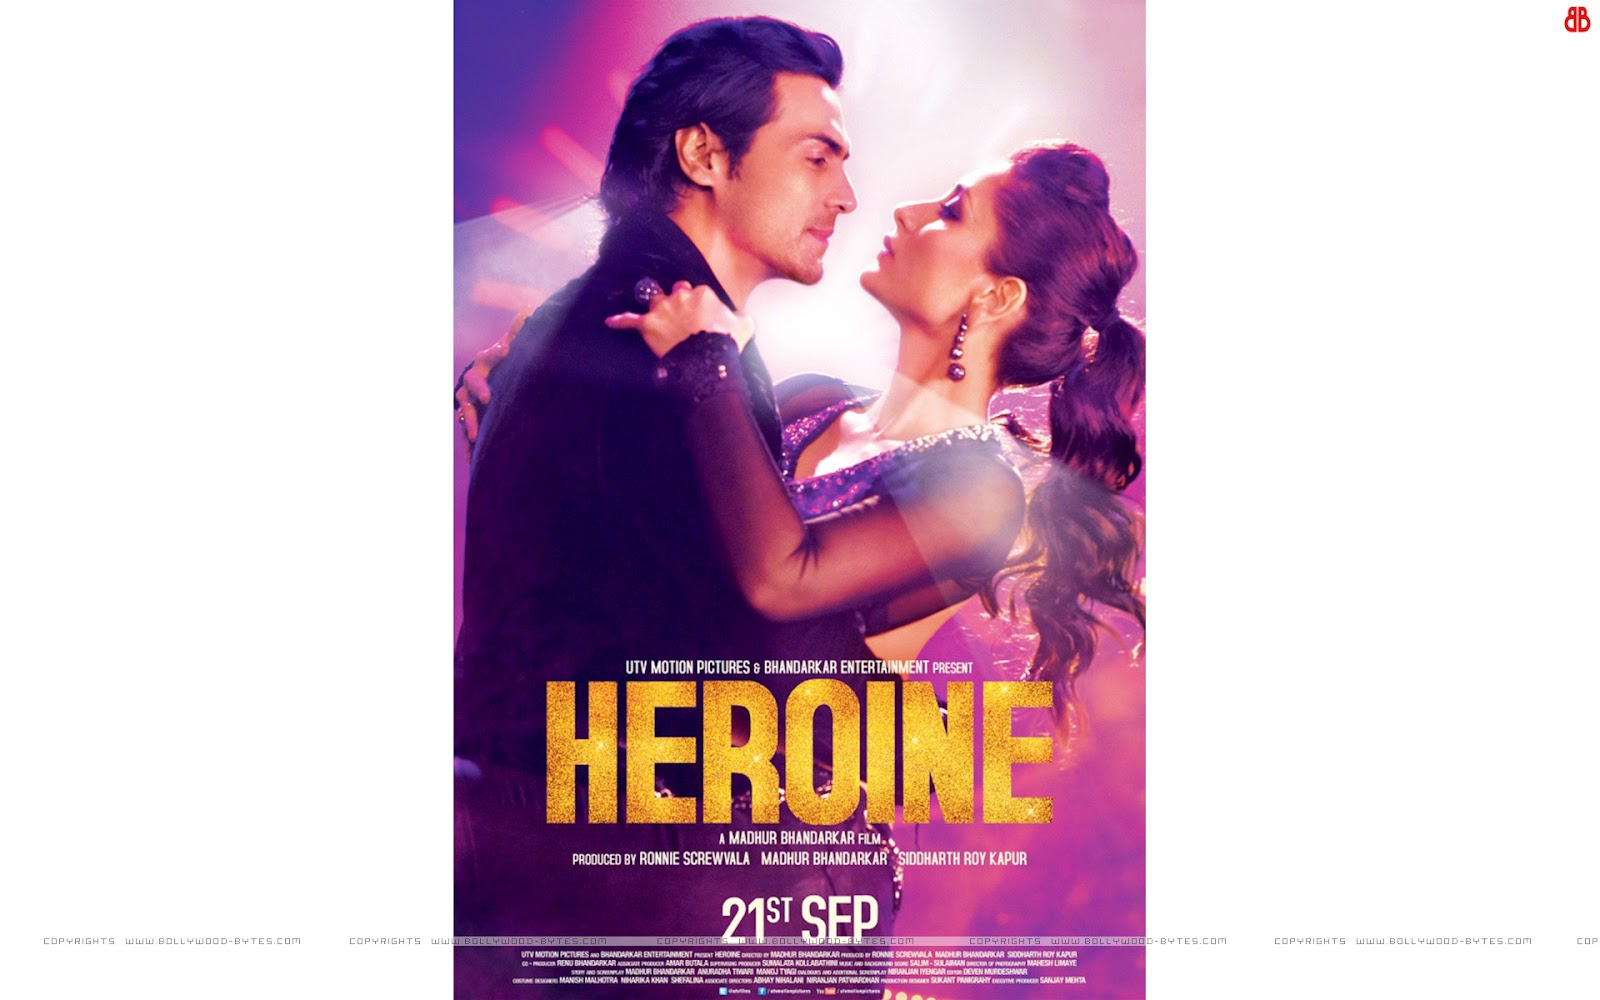 Heroine HD Wallpaper Hot Kareena Kapoor and Arjun Rampal